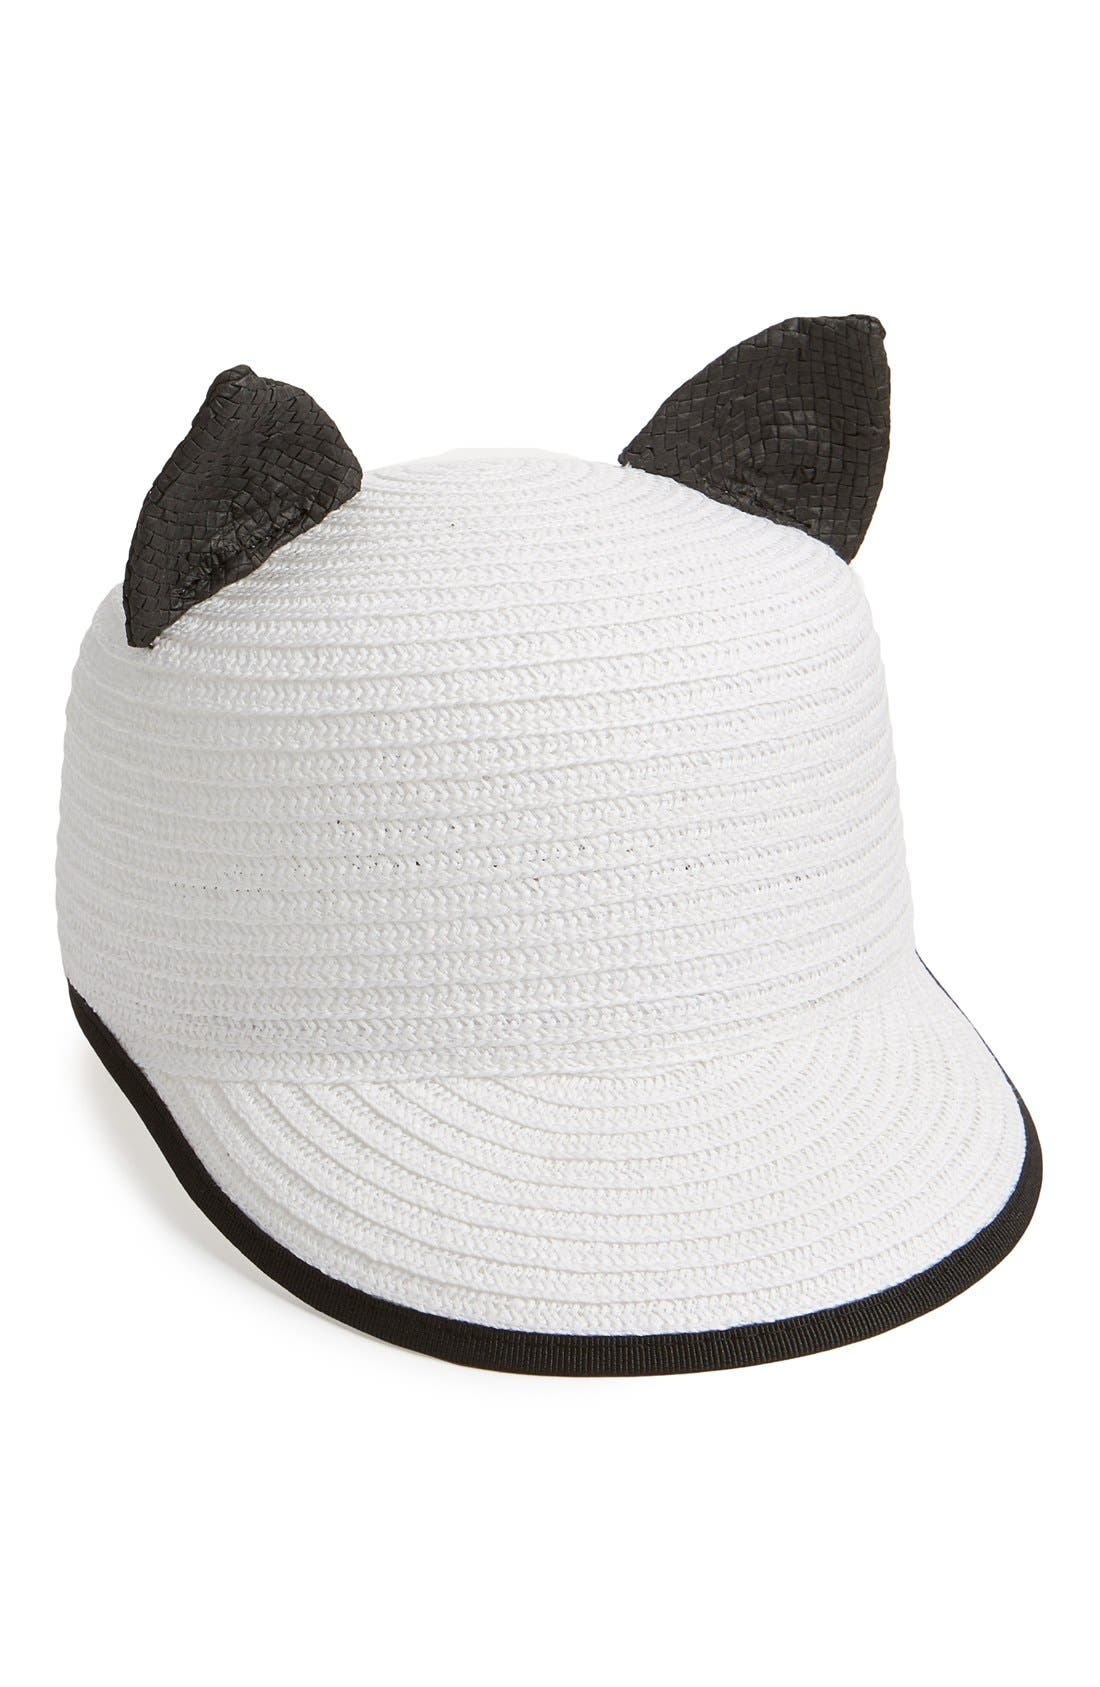 Alternate Image 1 Selected - Helene Berman 'Contrast Cat' Baseball Cap